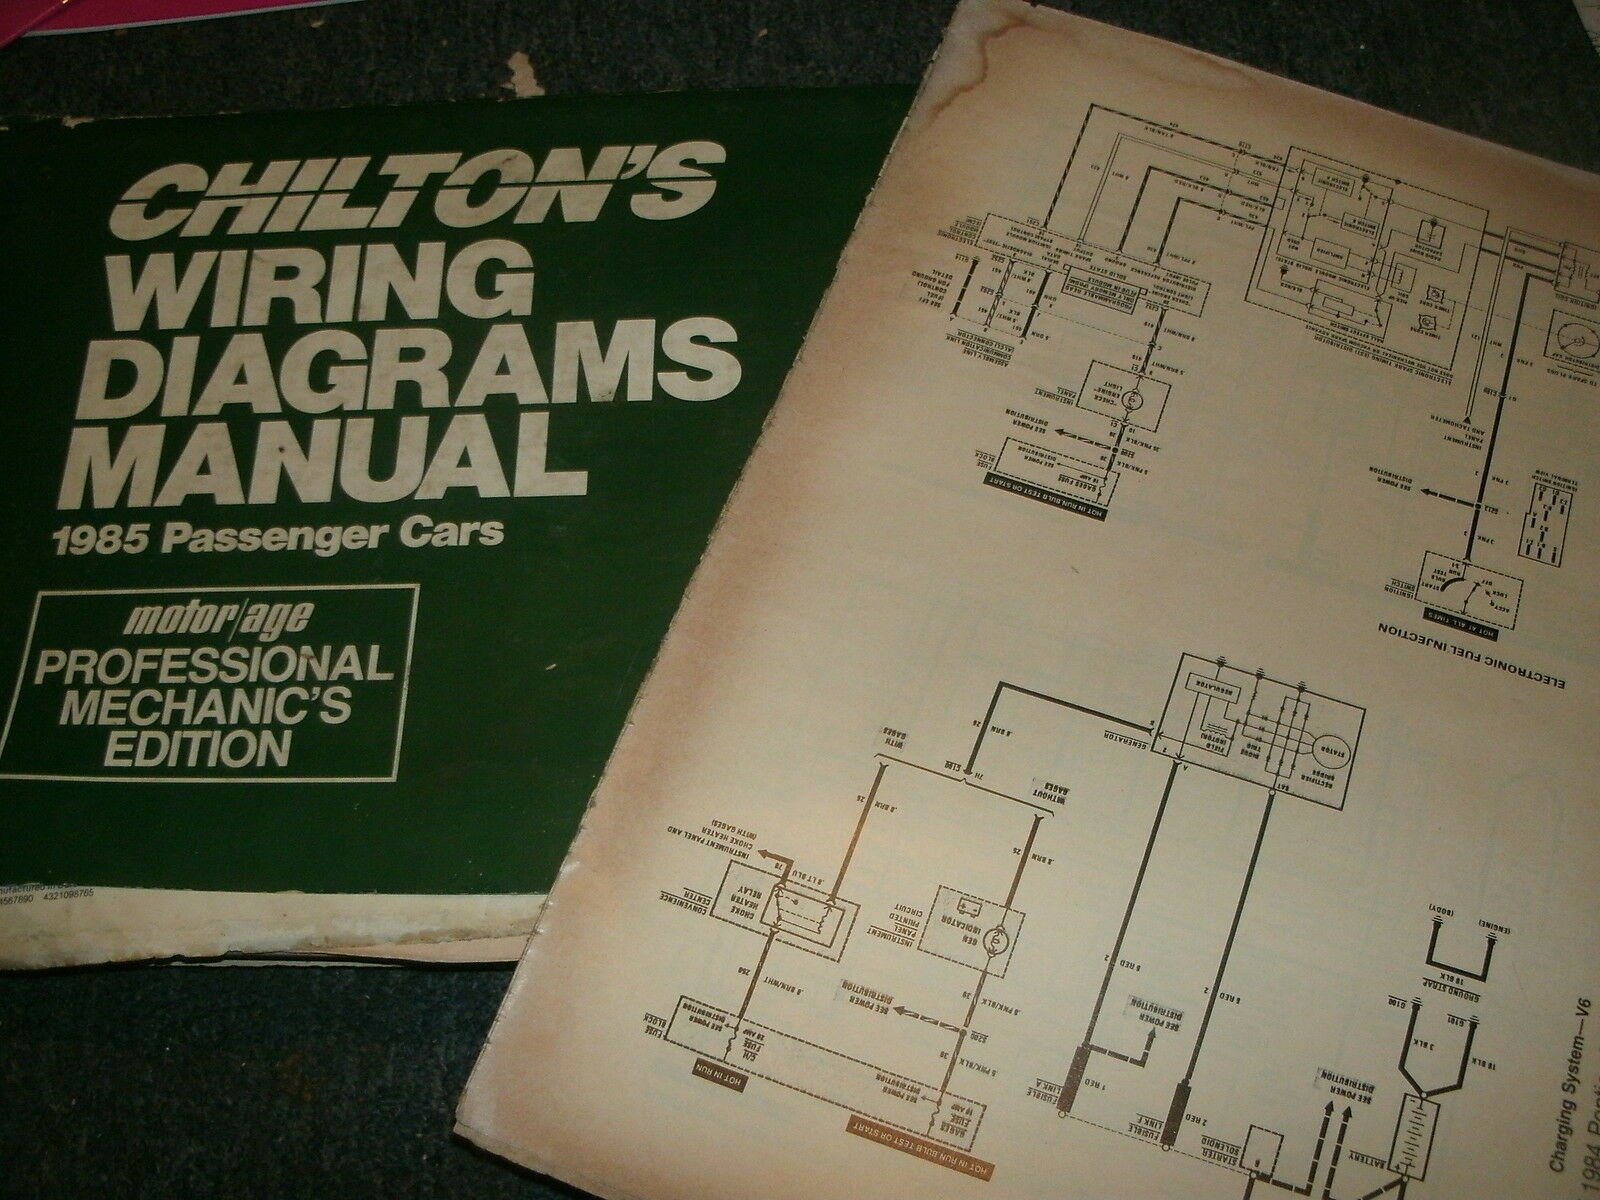 1985 Buick Skylark Wiring Diagrams Schematics Manual Sheets Set 1 of 1 See  More